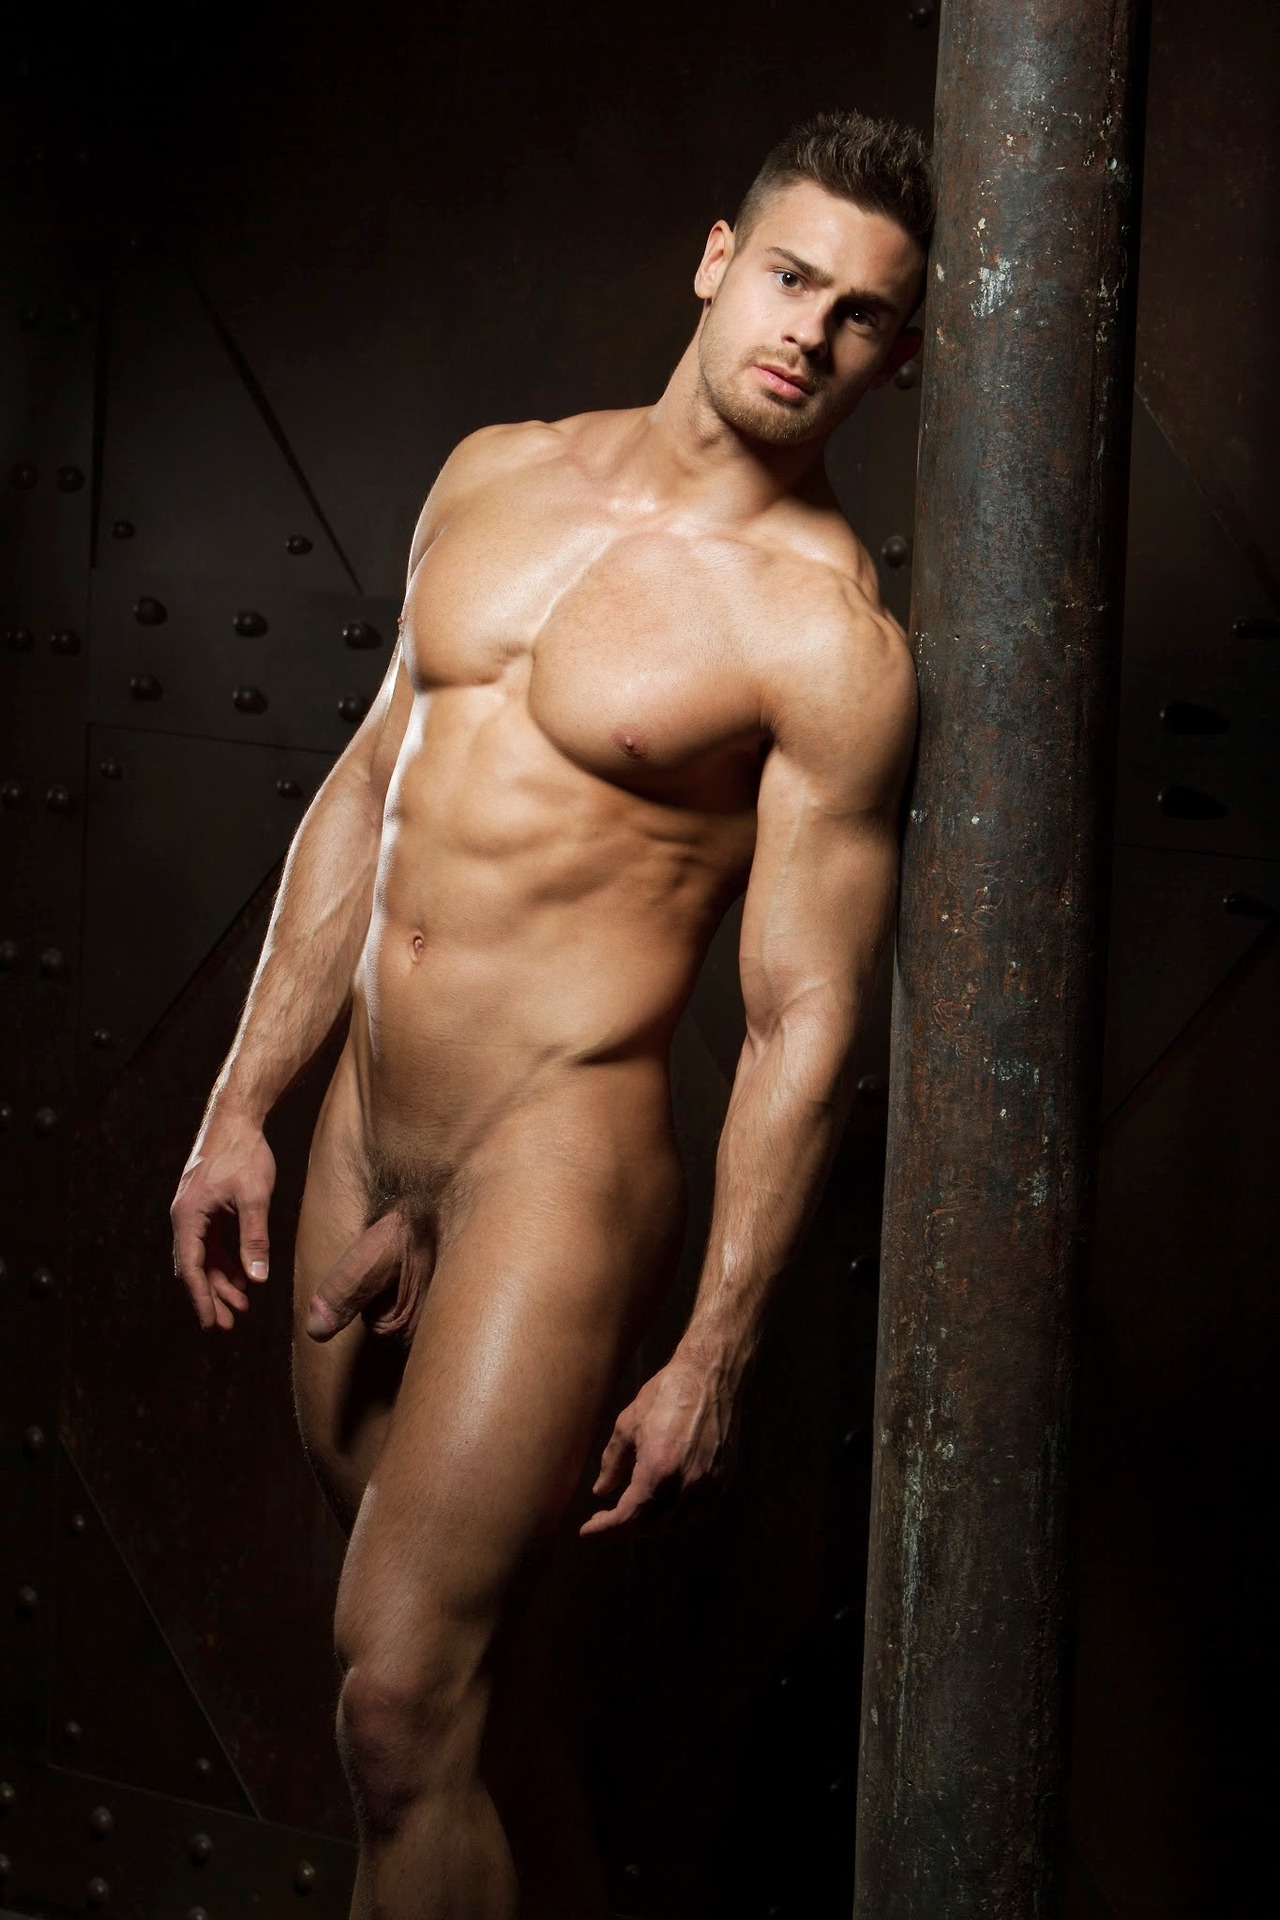 Male erotic models